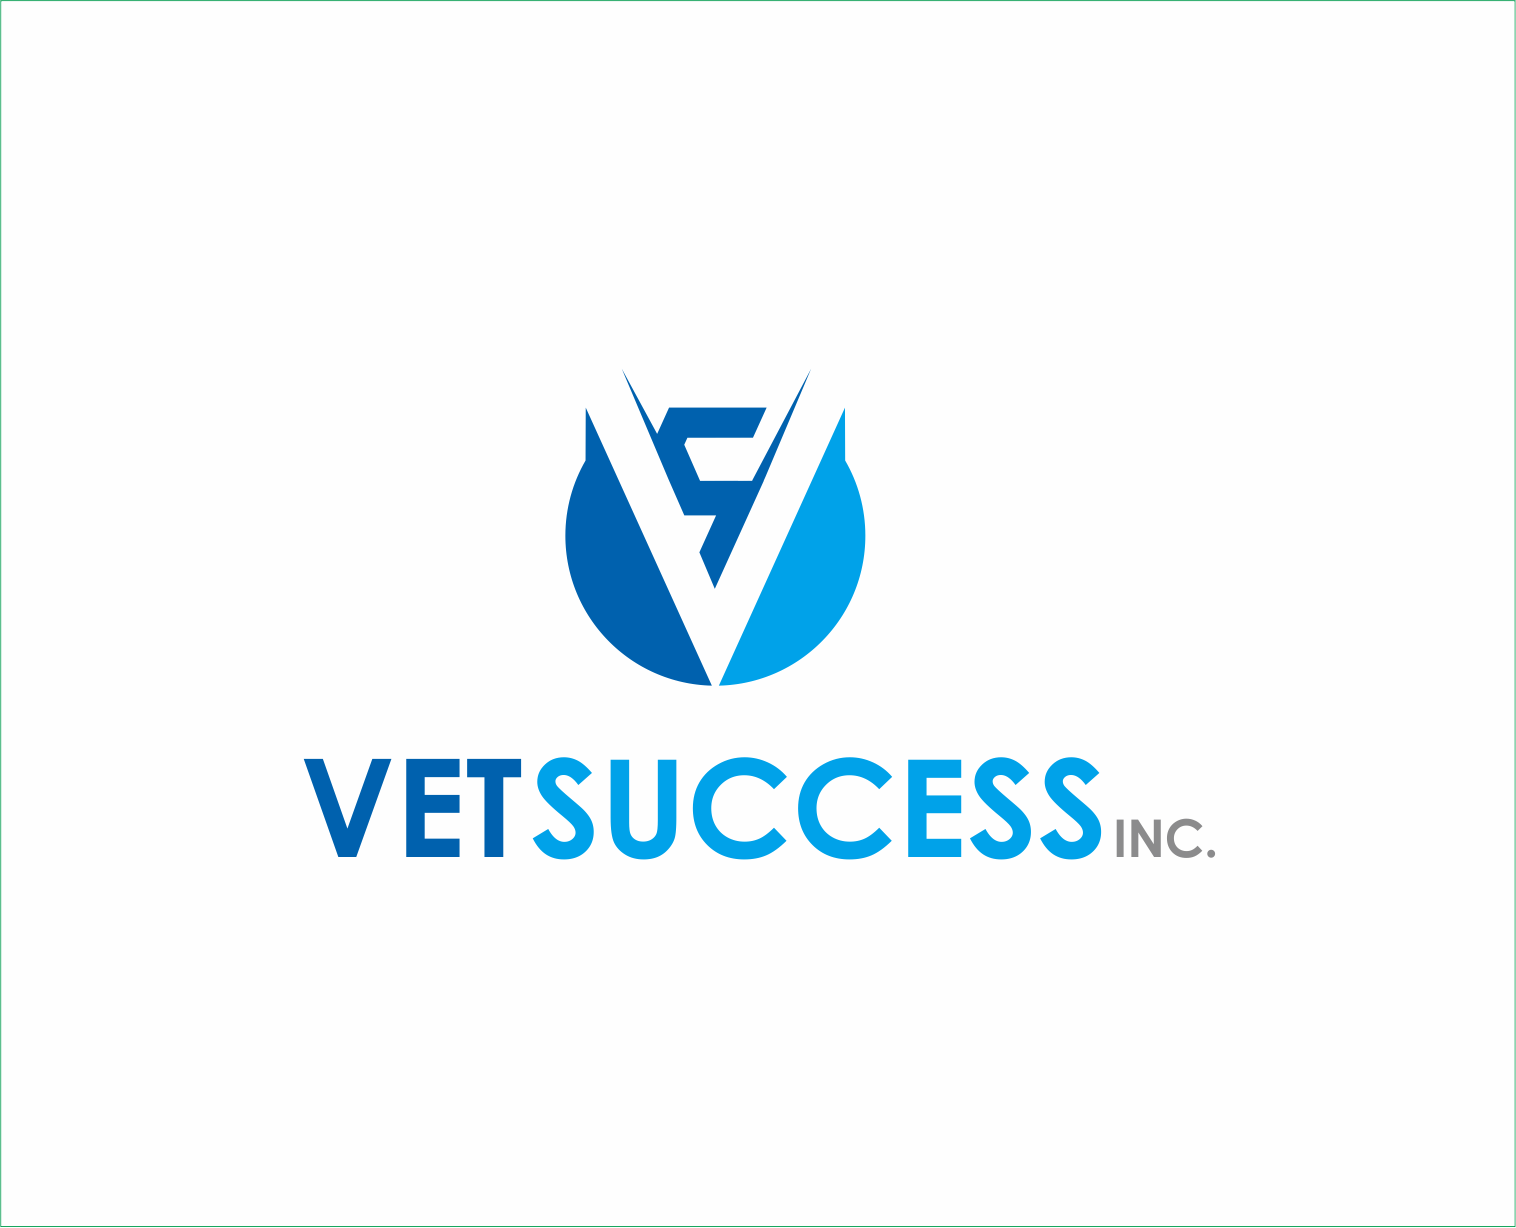 Logo Design by Armada Jamaluddin - Entry No. 128 in the Logo Design Contest Imaginative Logo Design for Vet Success Inc..